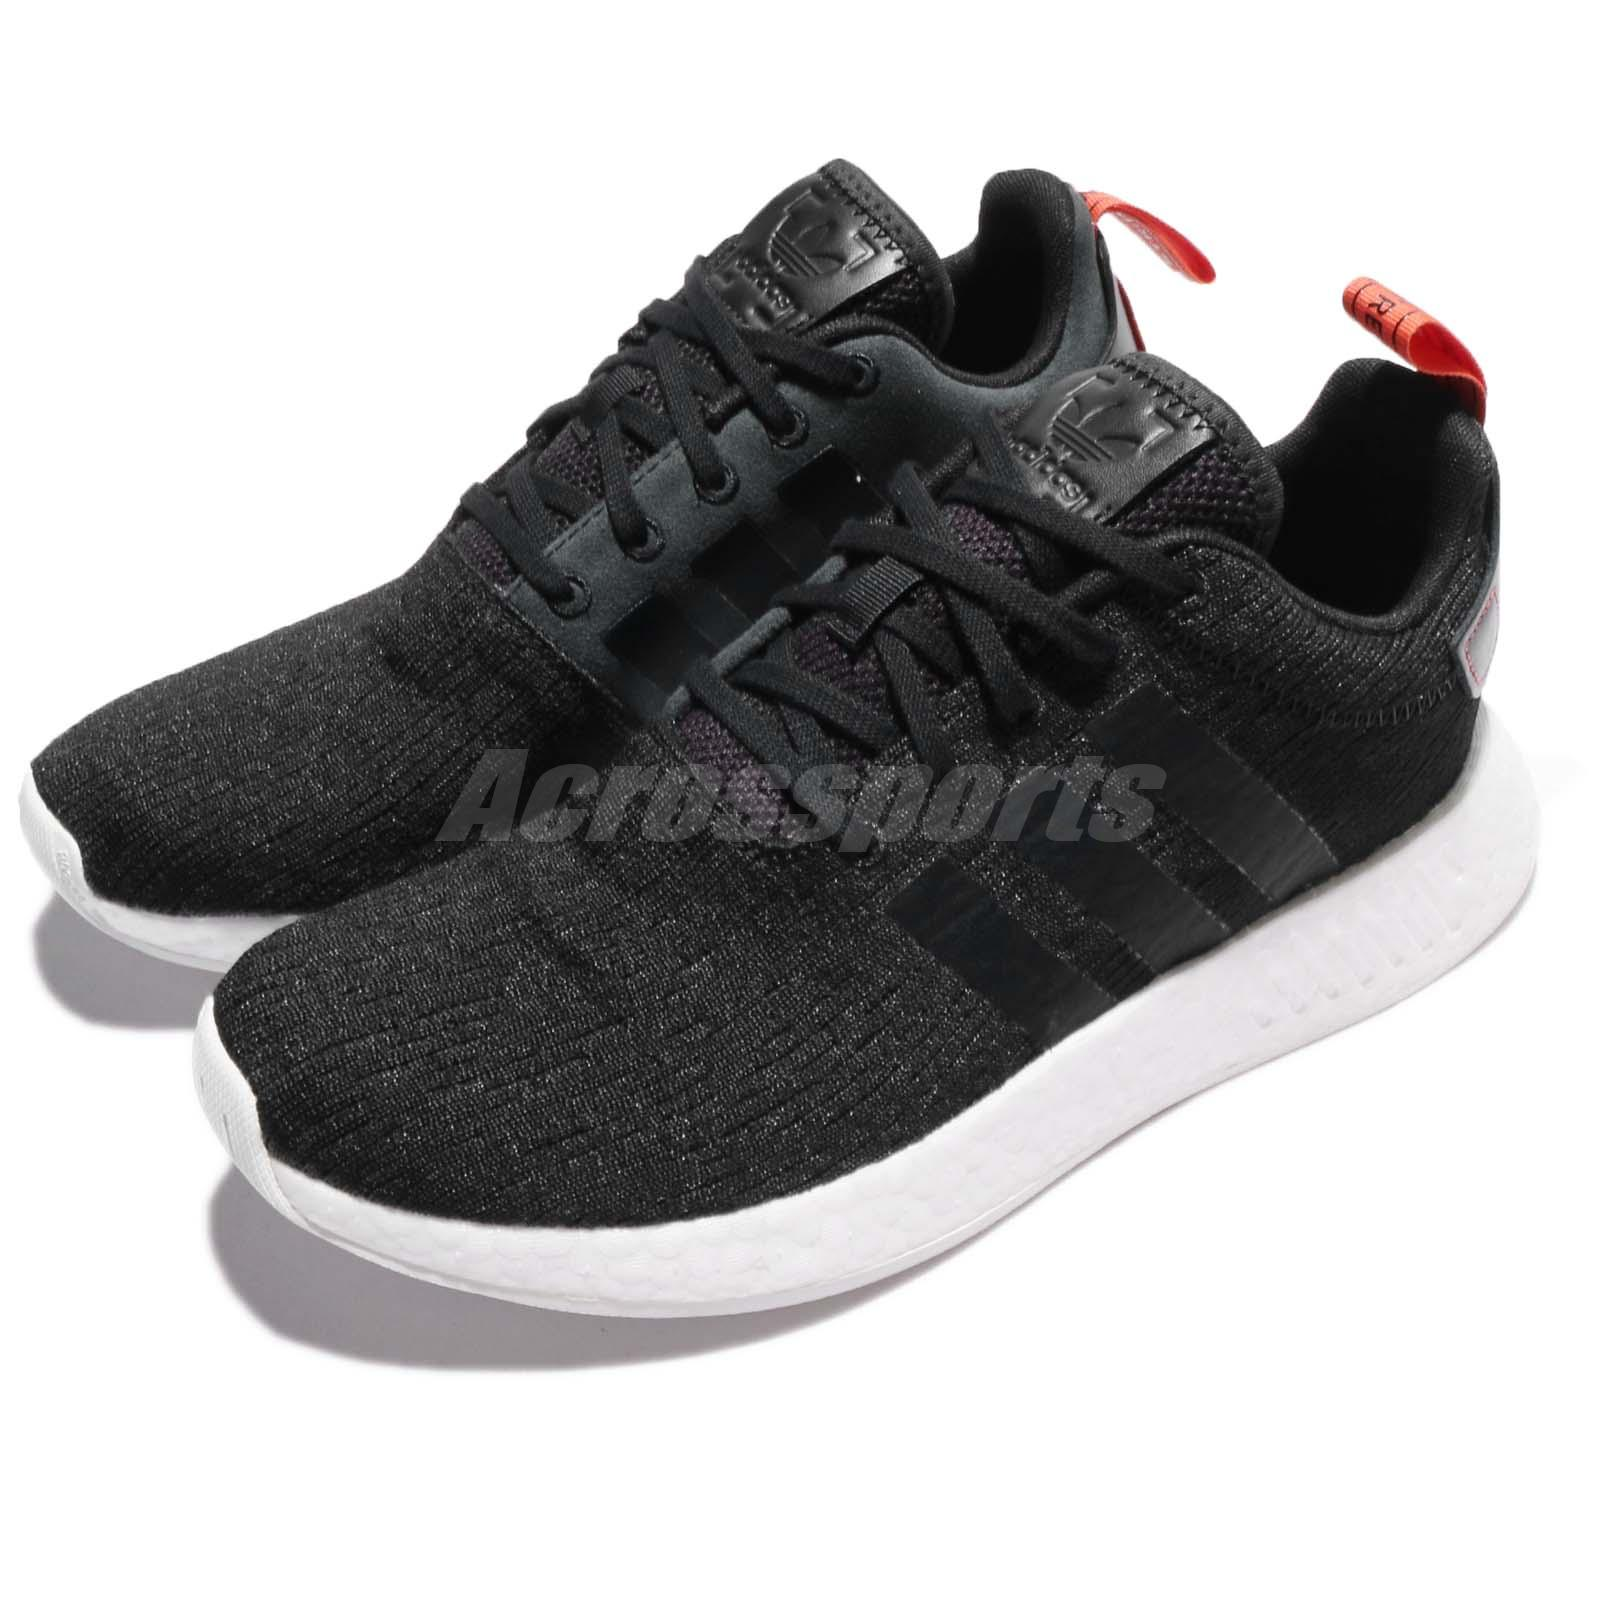 Details about adidas Originals NMD_R2 BOOST Black Orange Men Running Shoes Sneakers CG3384